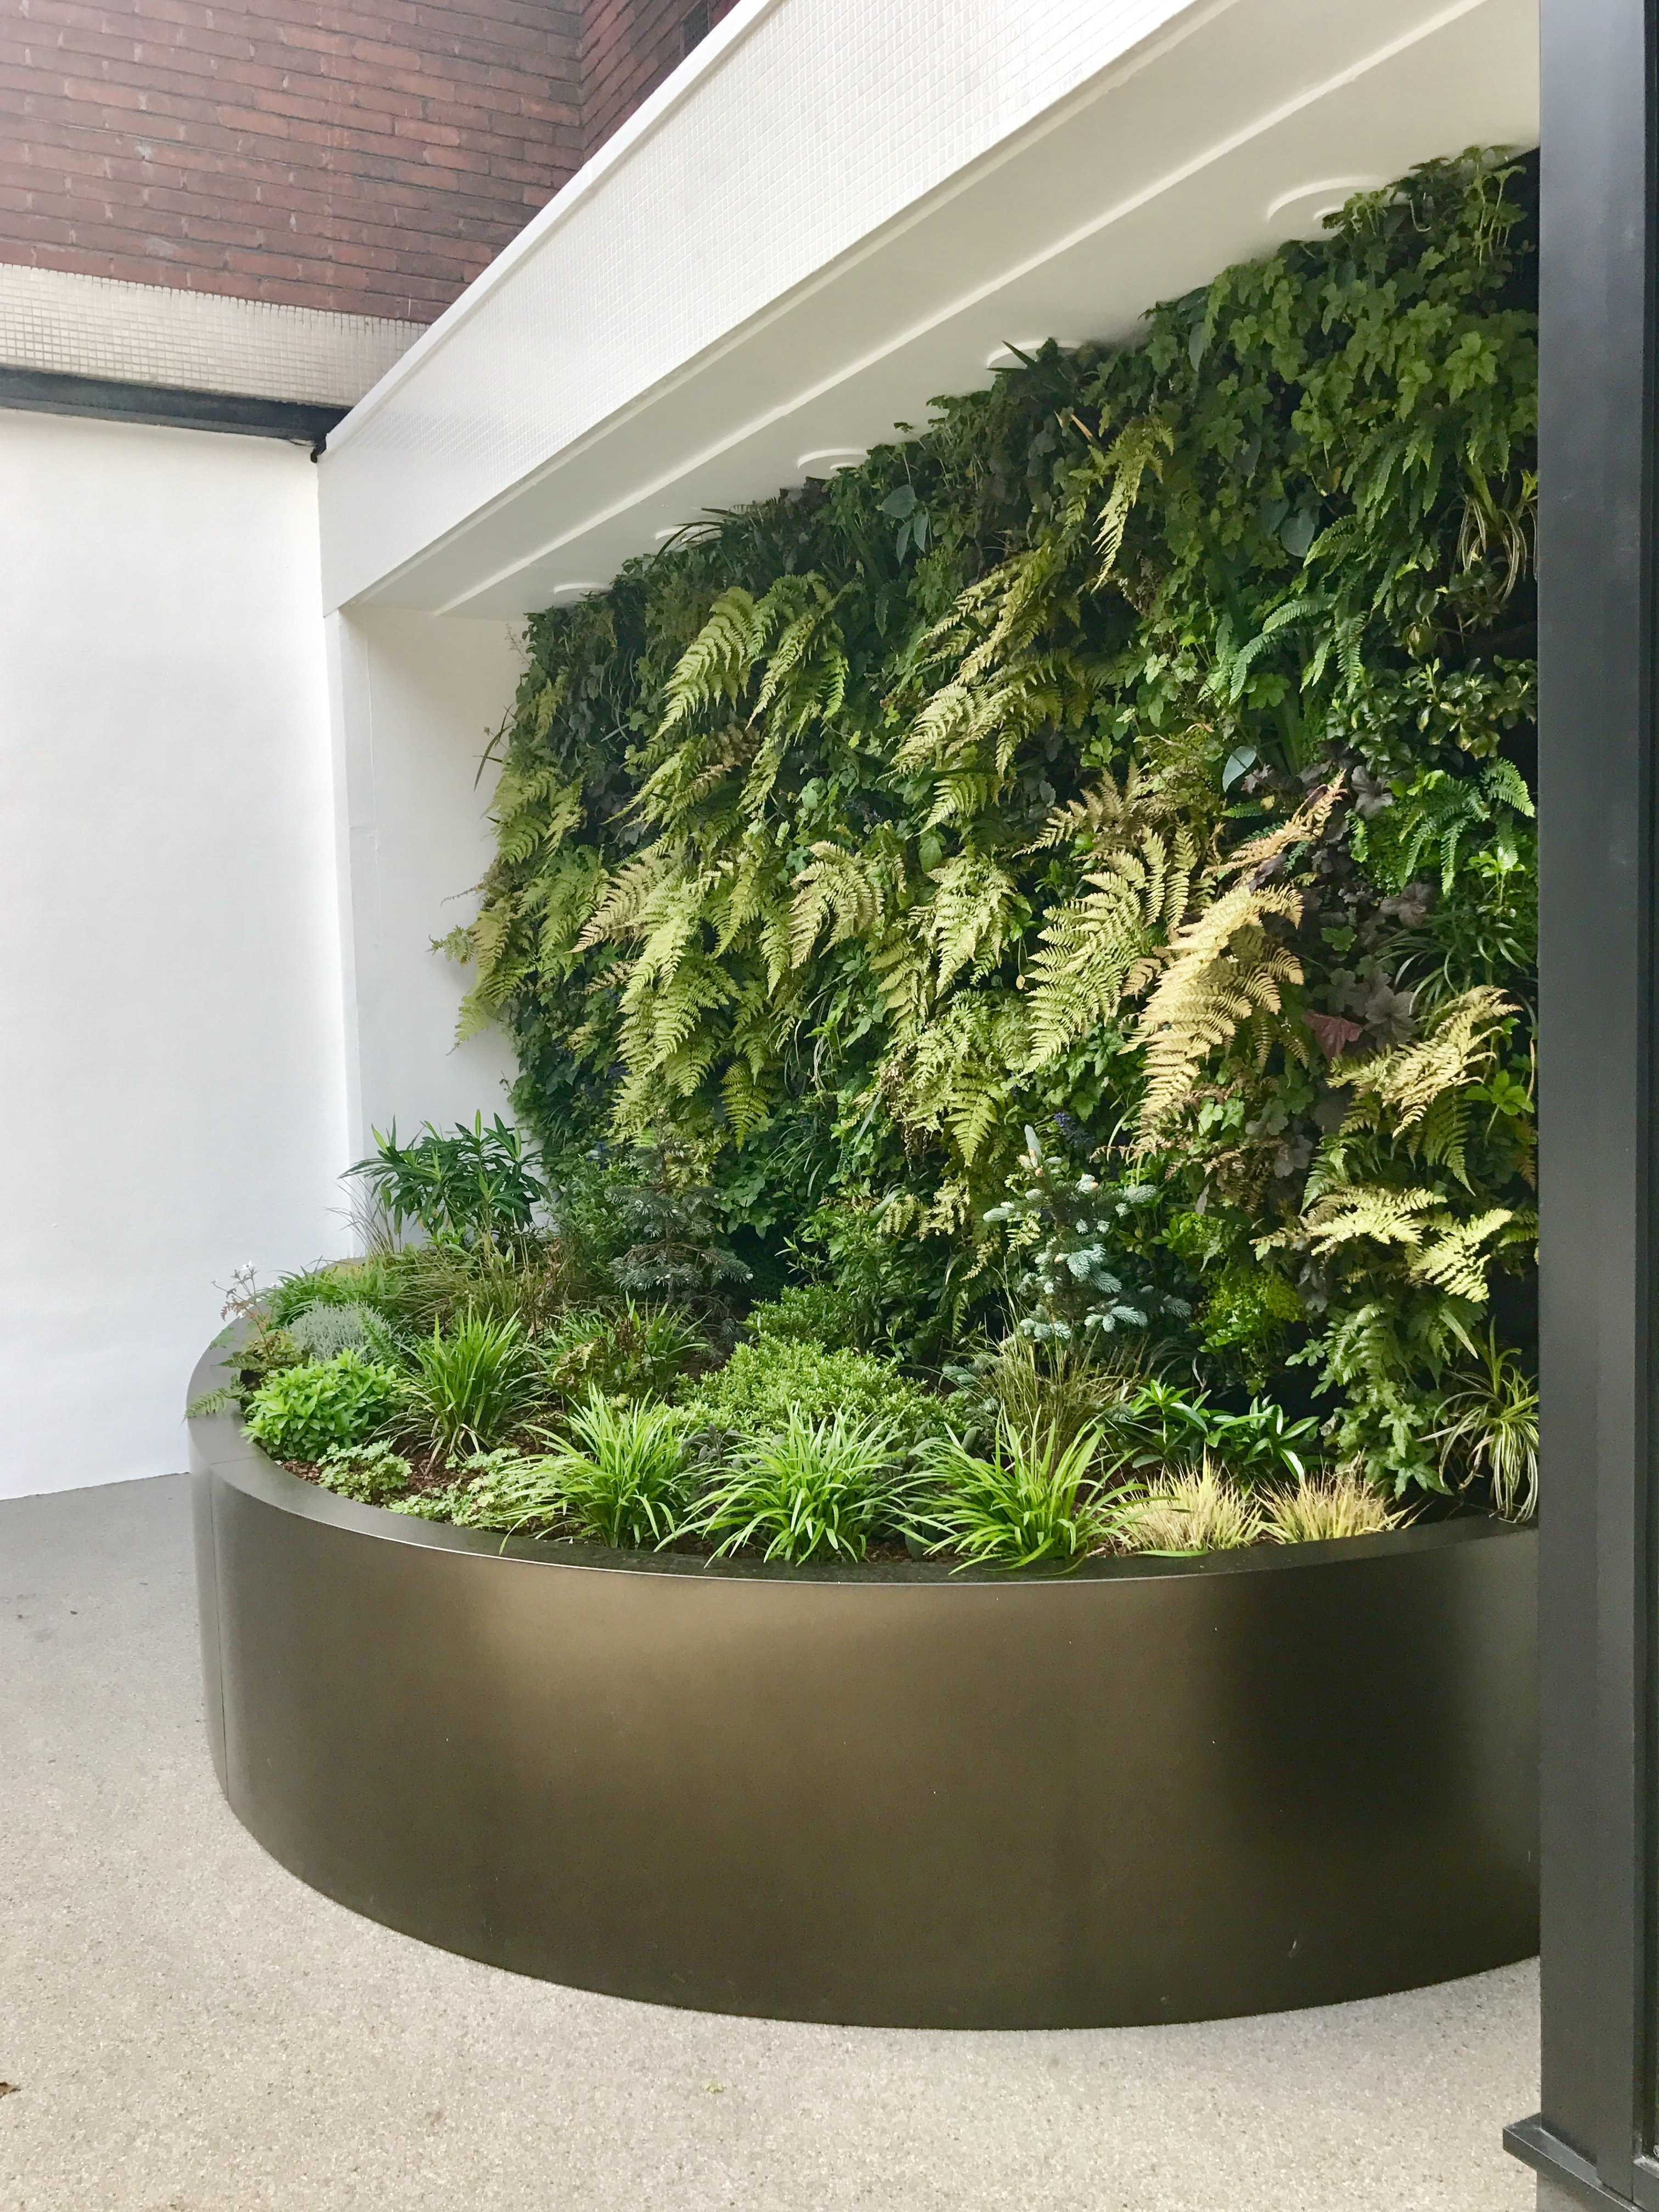 Living Wall at Bedford Hotel